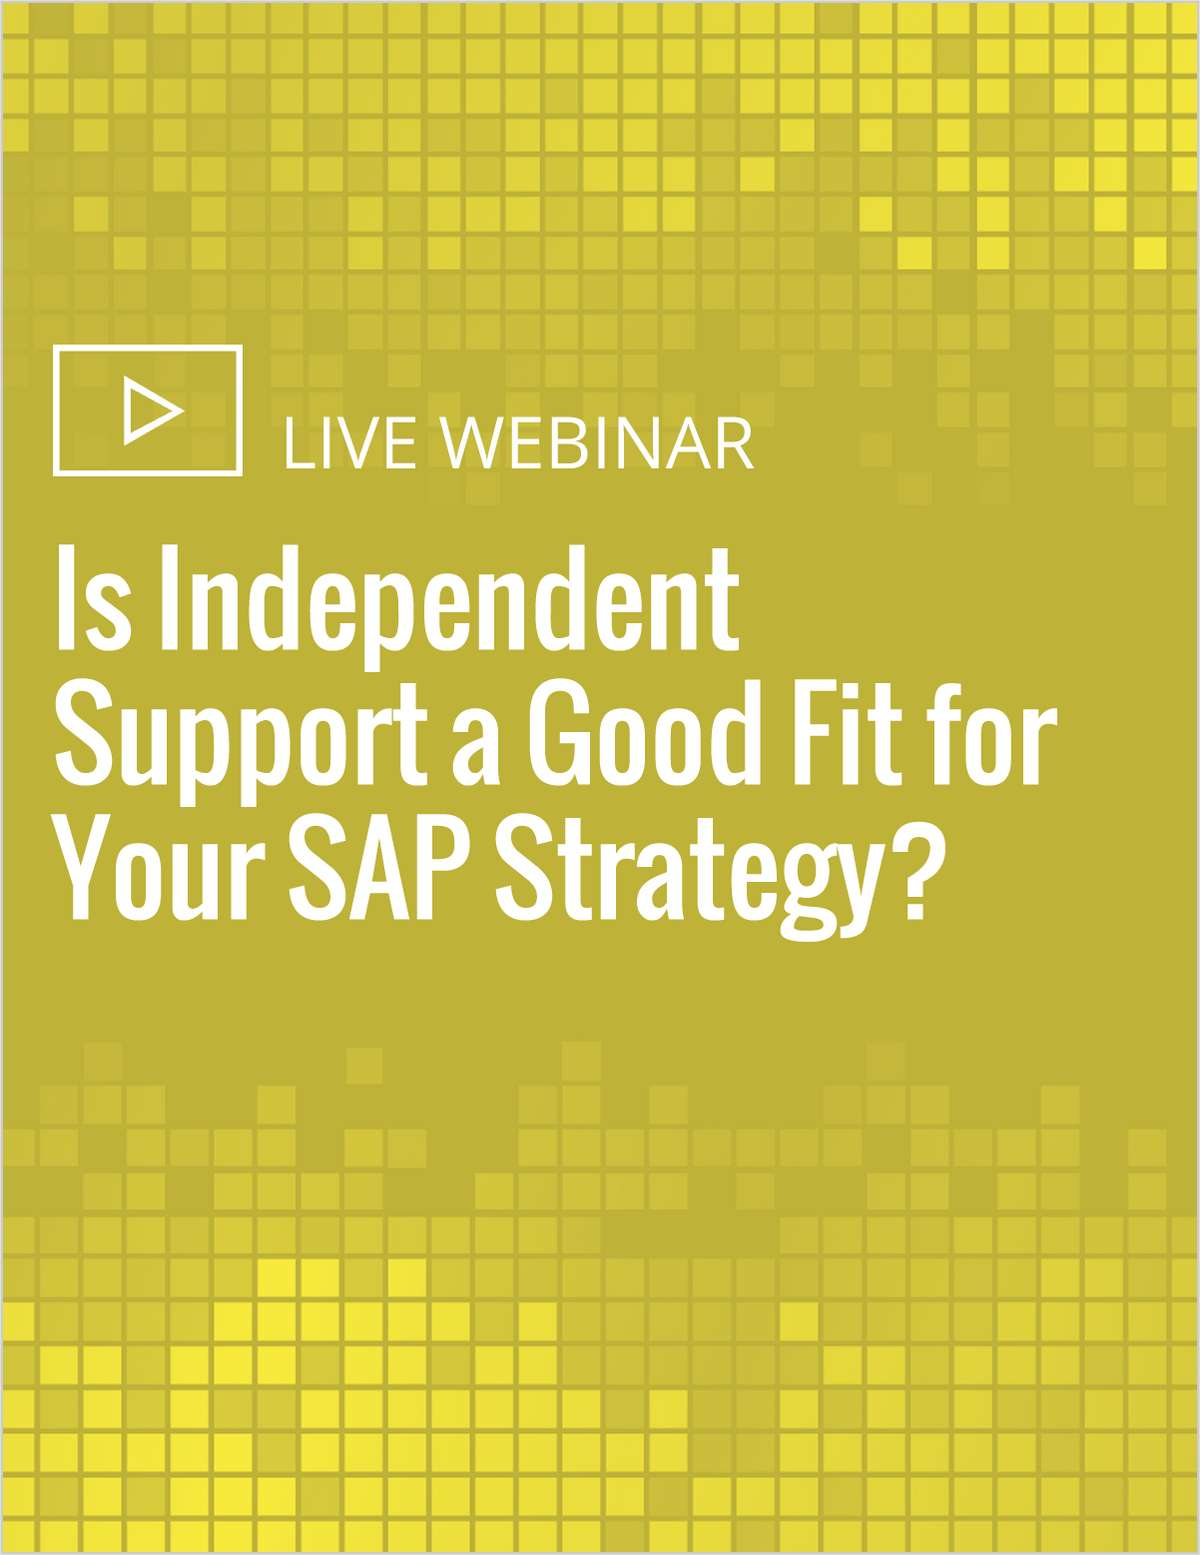 Is Independent Support a Good Fit for Your SAP Strategy?